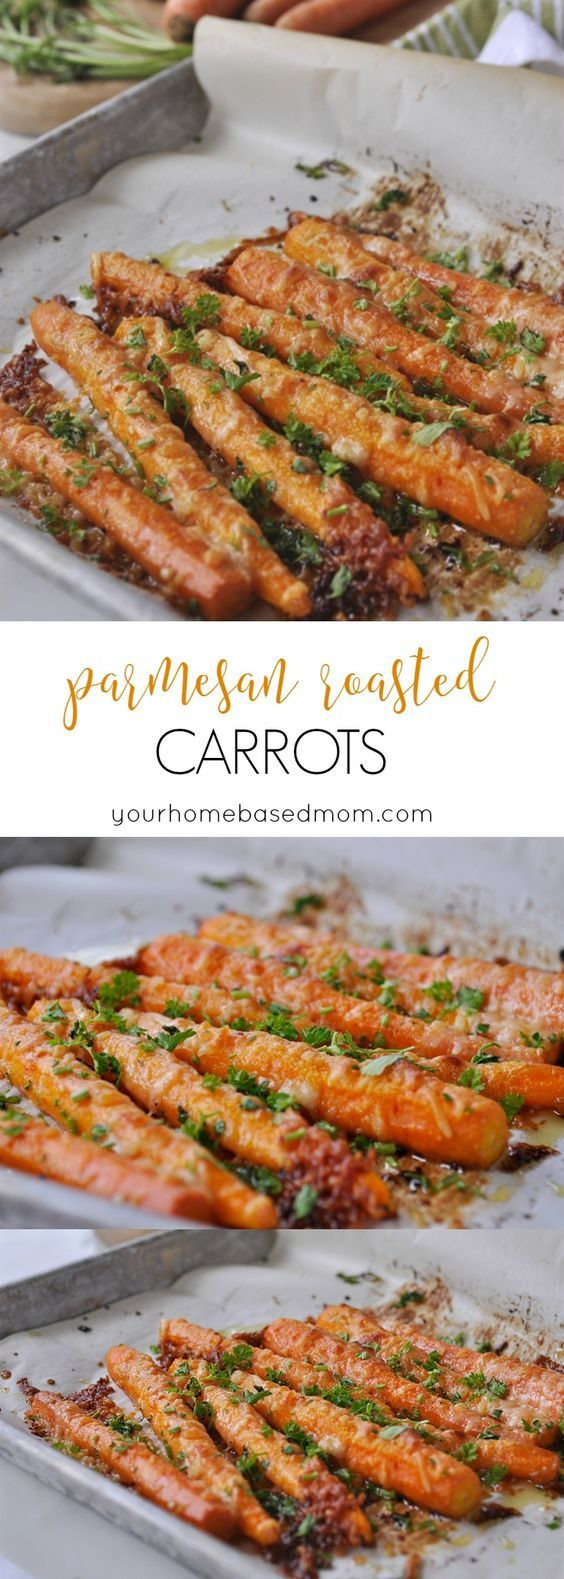 手机壳定制jordan retro cleats Parmesan Roasted Carrots  the perfect way to get your family to eat their veggies